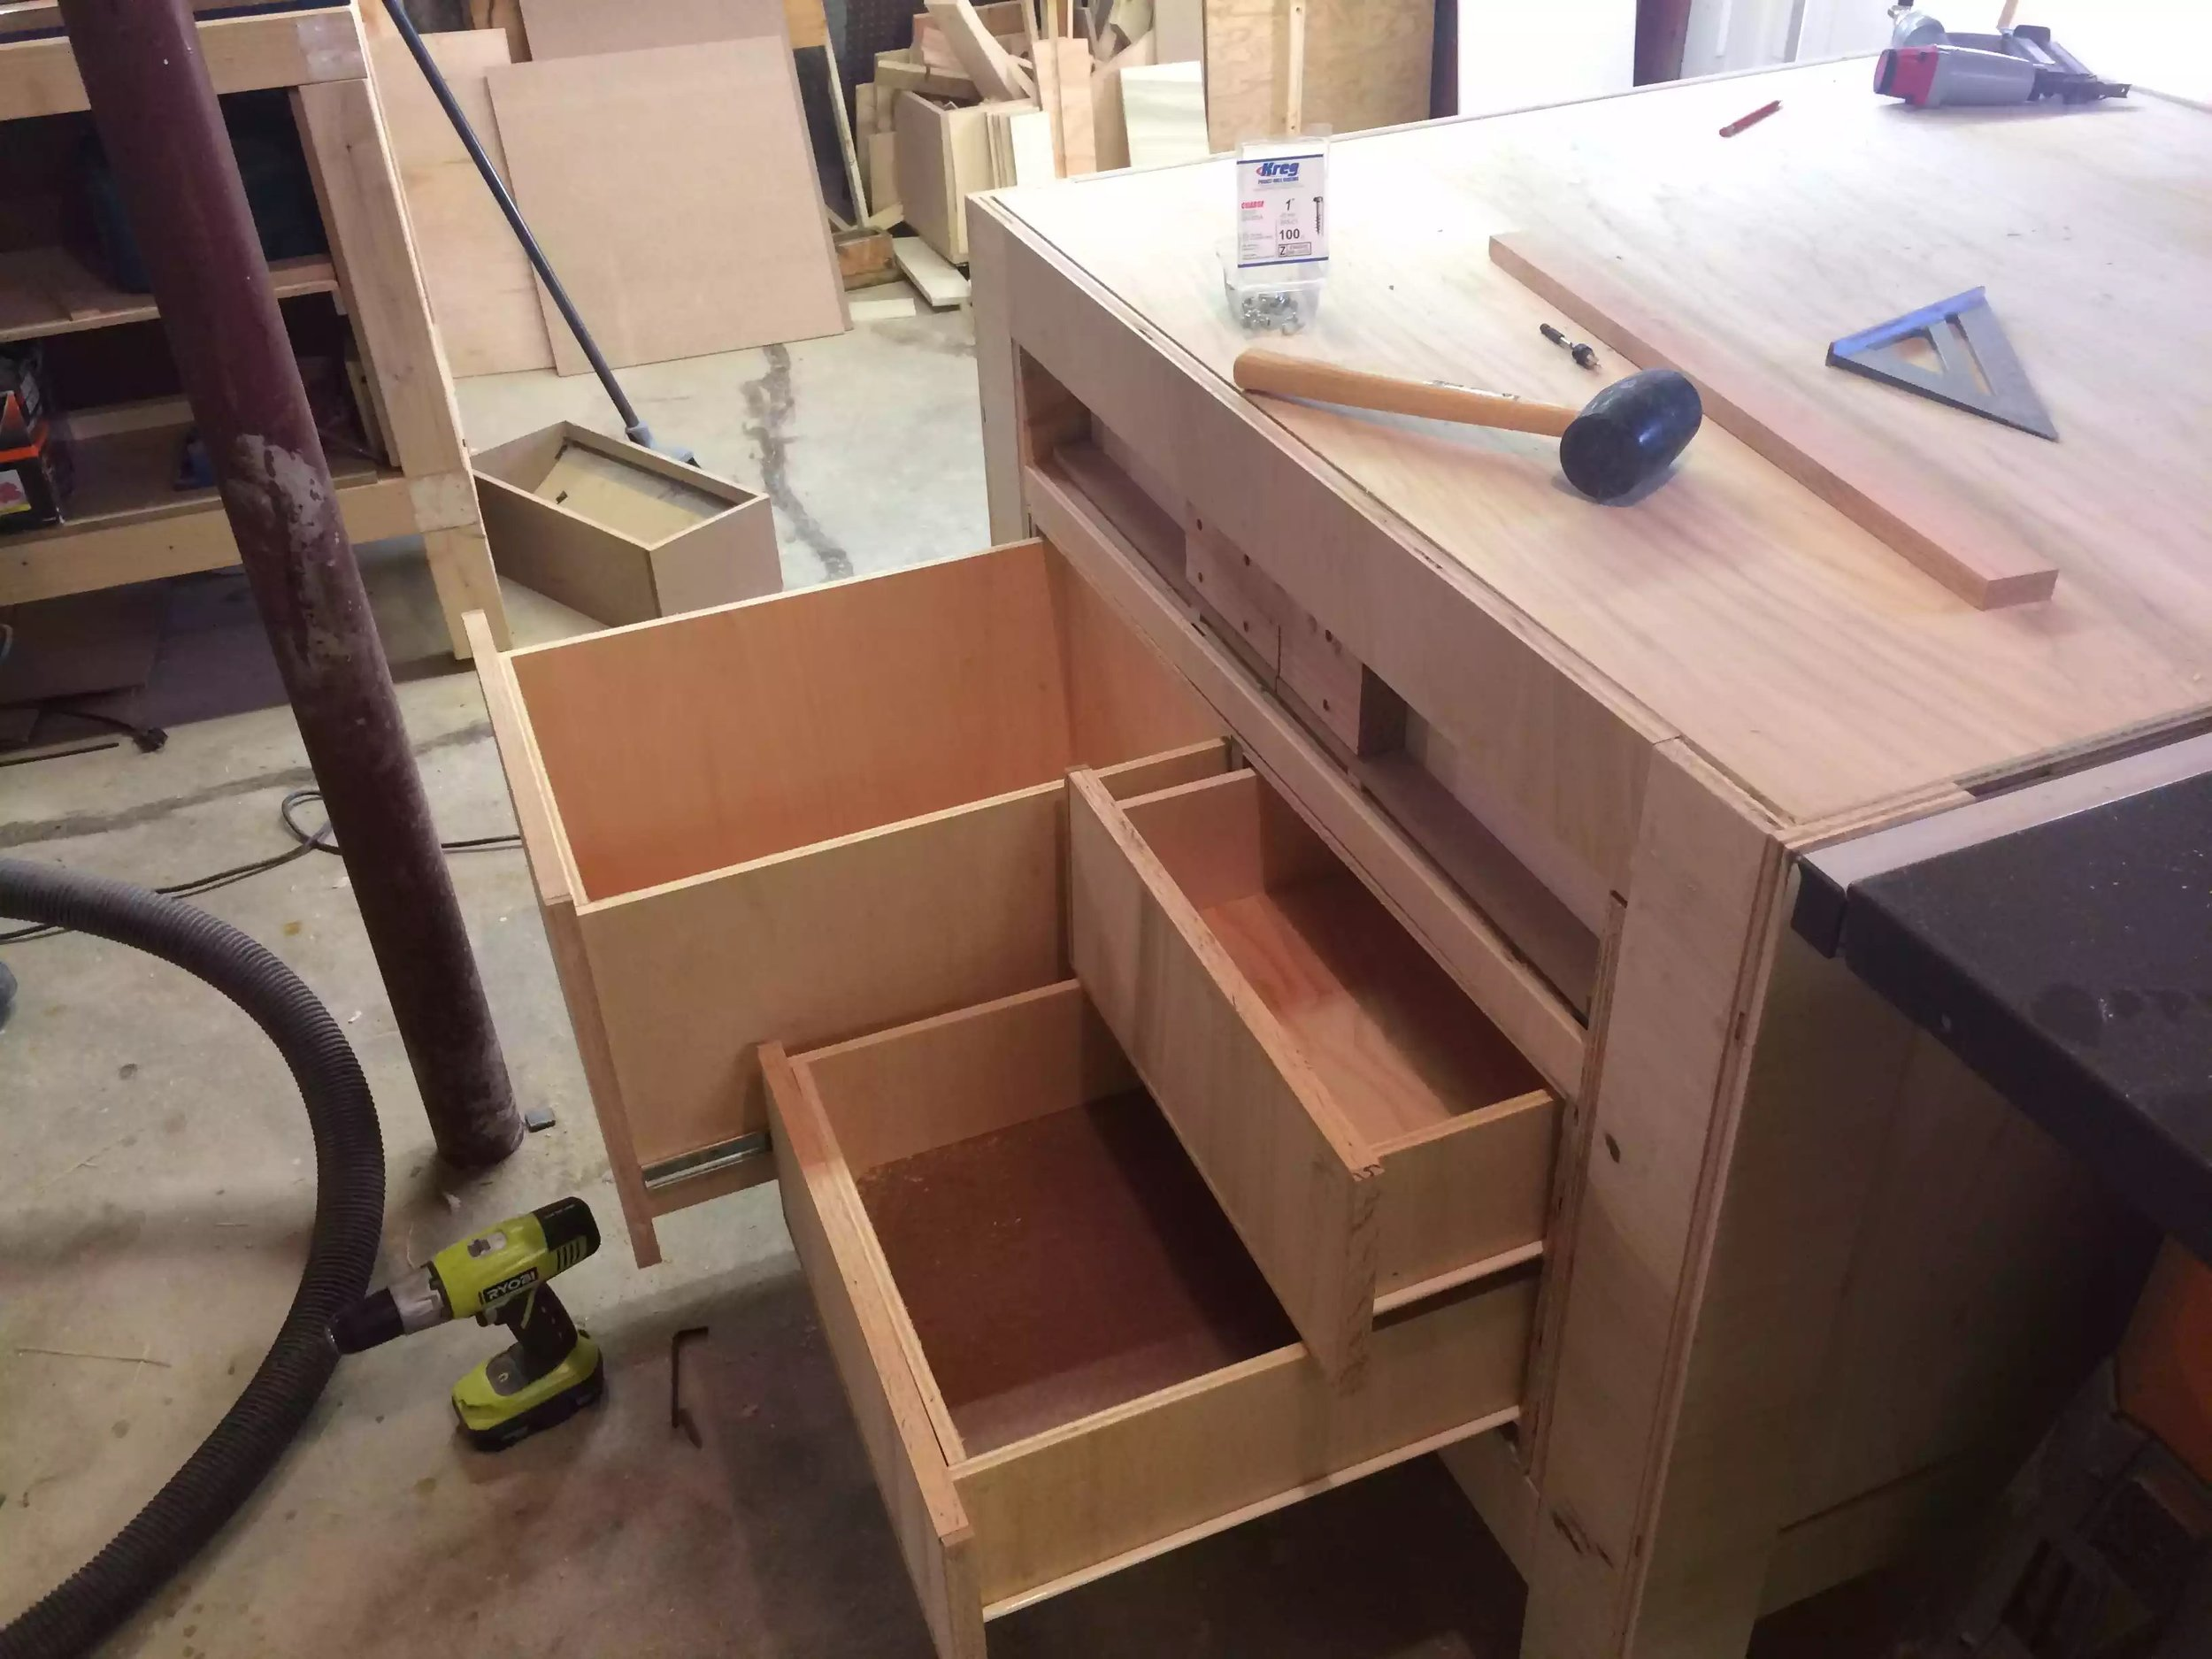 3 Drawers on the left side